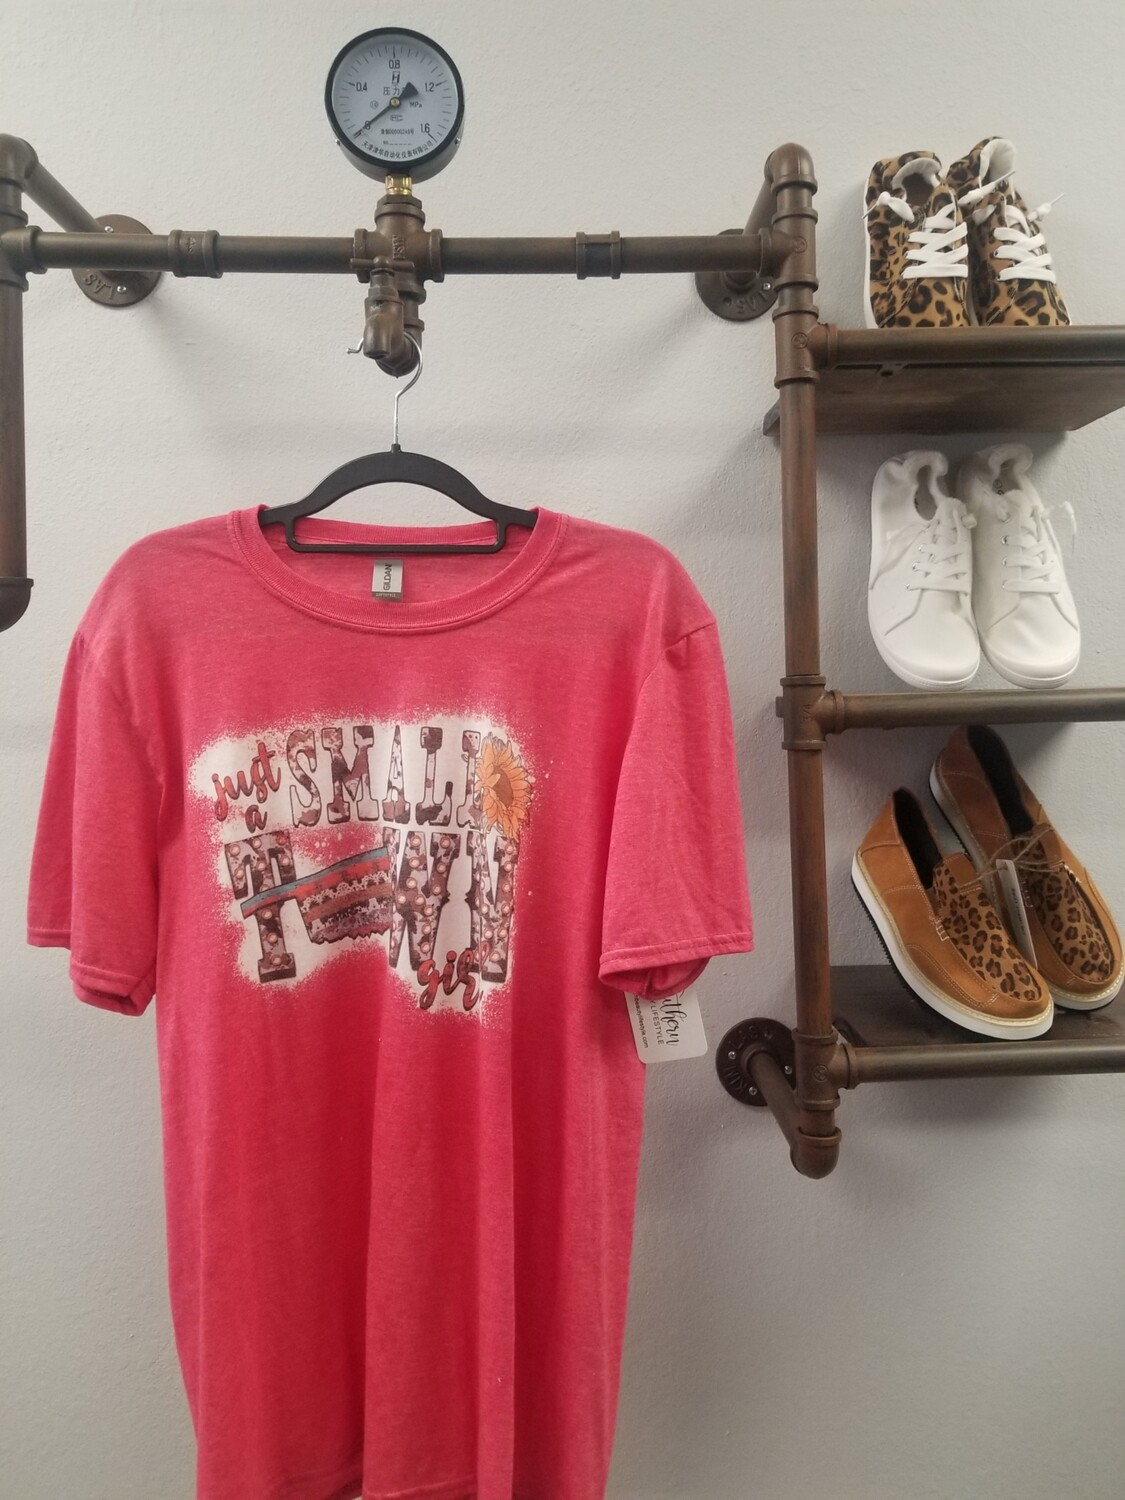 Red & Bleached Small Town Girl Shirt